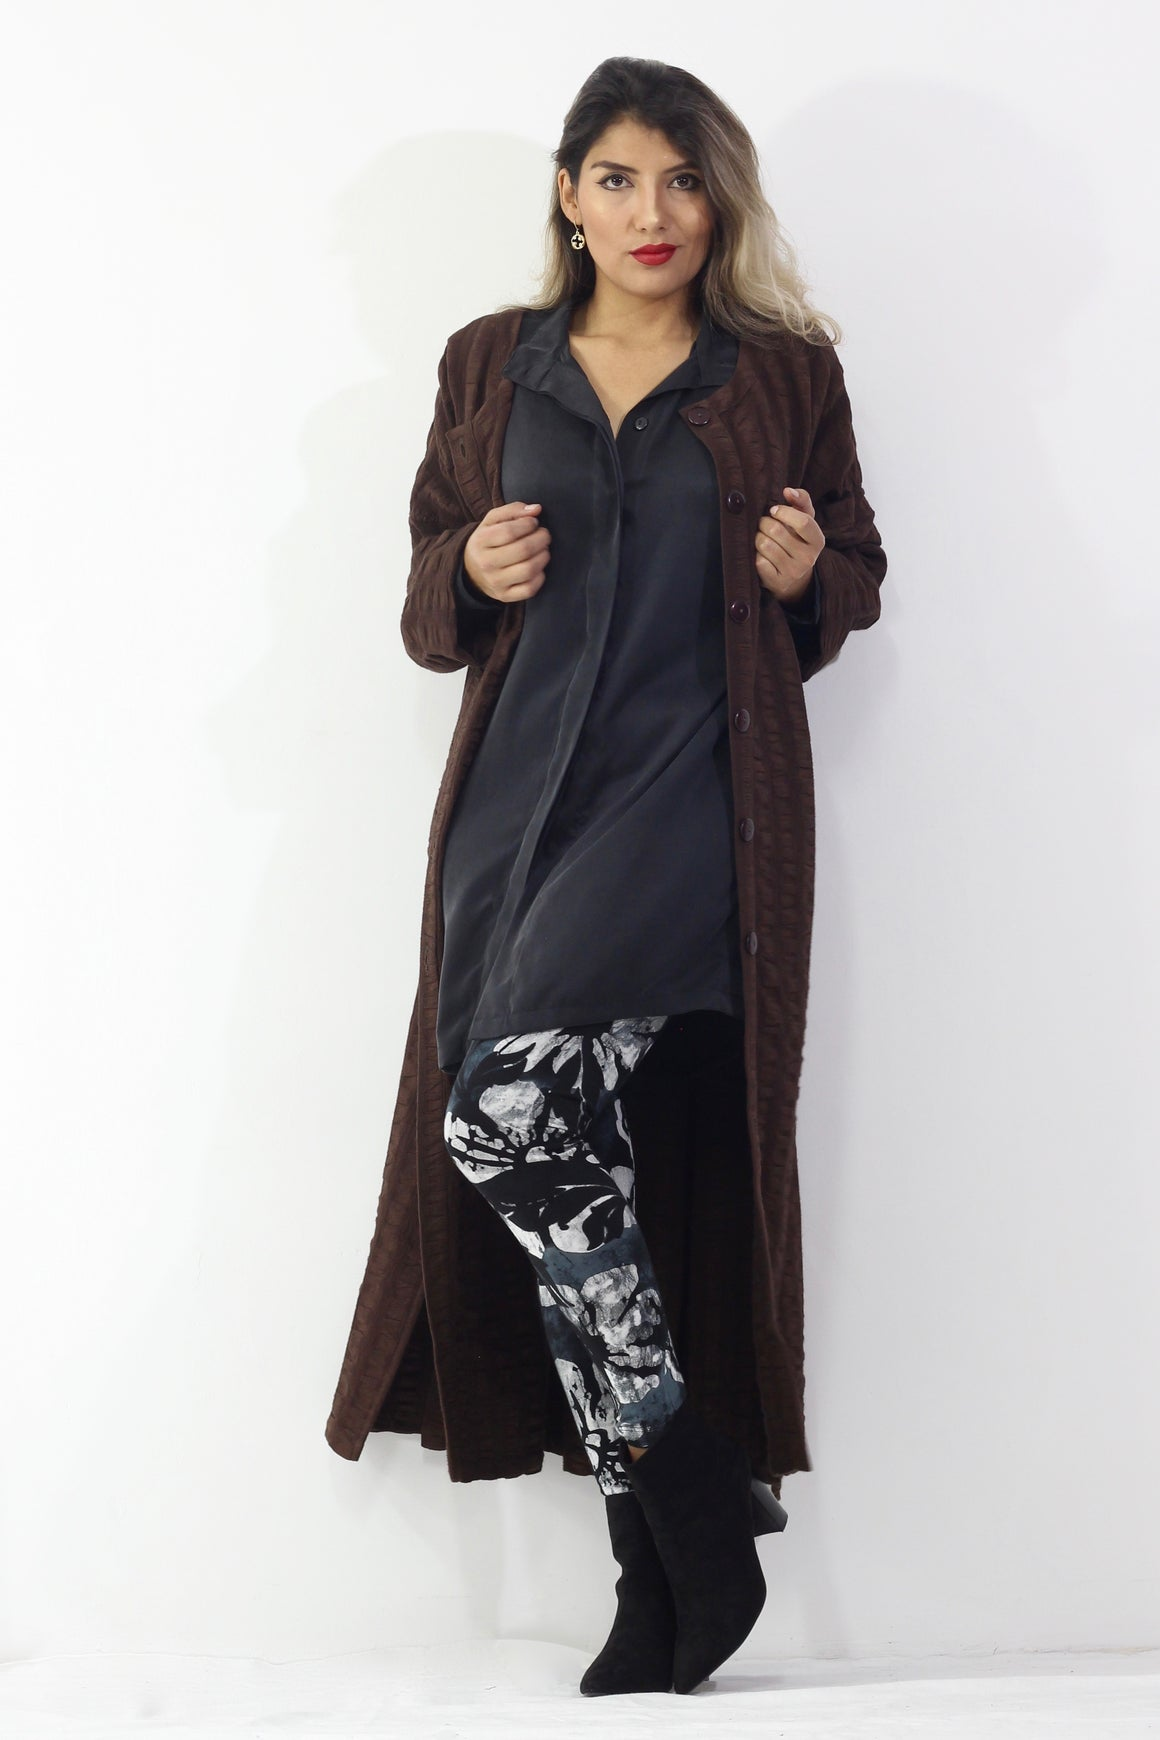 BronzeMe - Biggy Jacket, Leggings, Silk Blouse- Separates